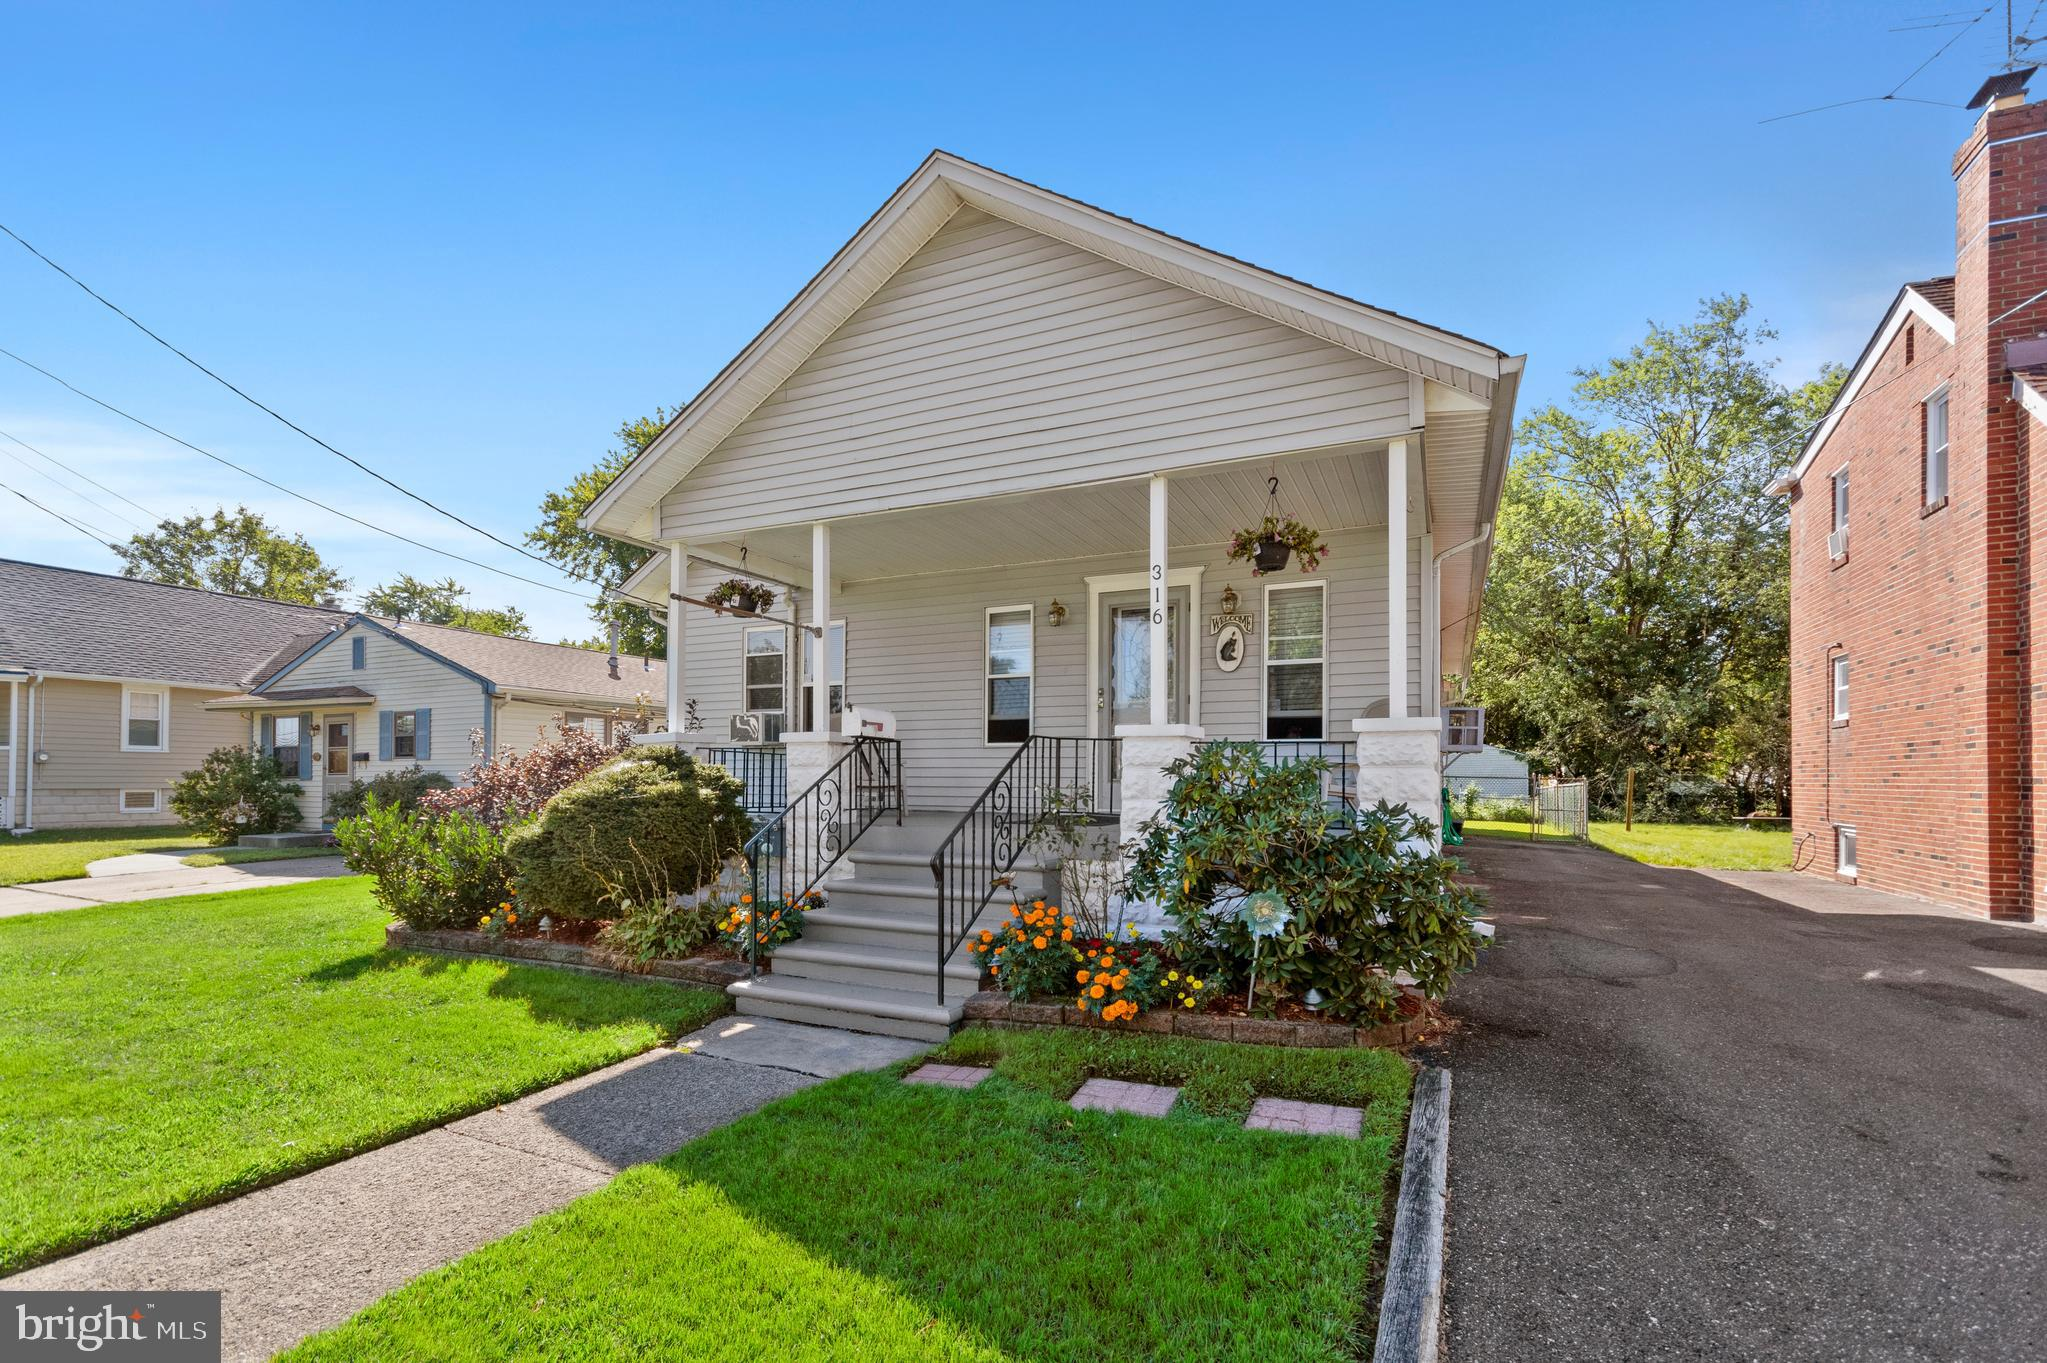 316 E WASHINGTON AVENUE, MAGNOLIA, NJ 08049